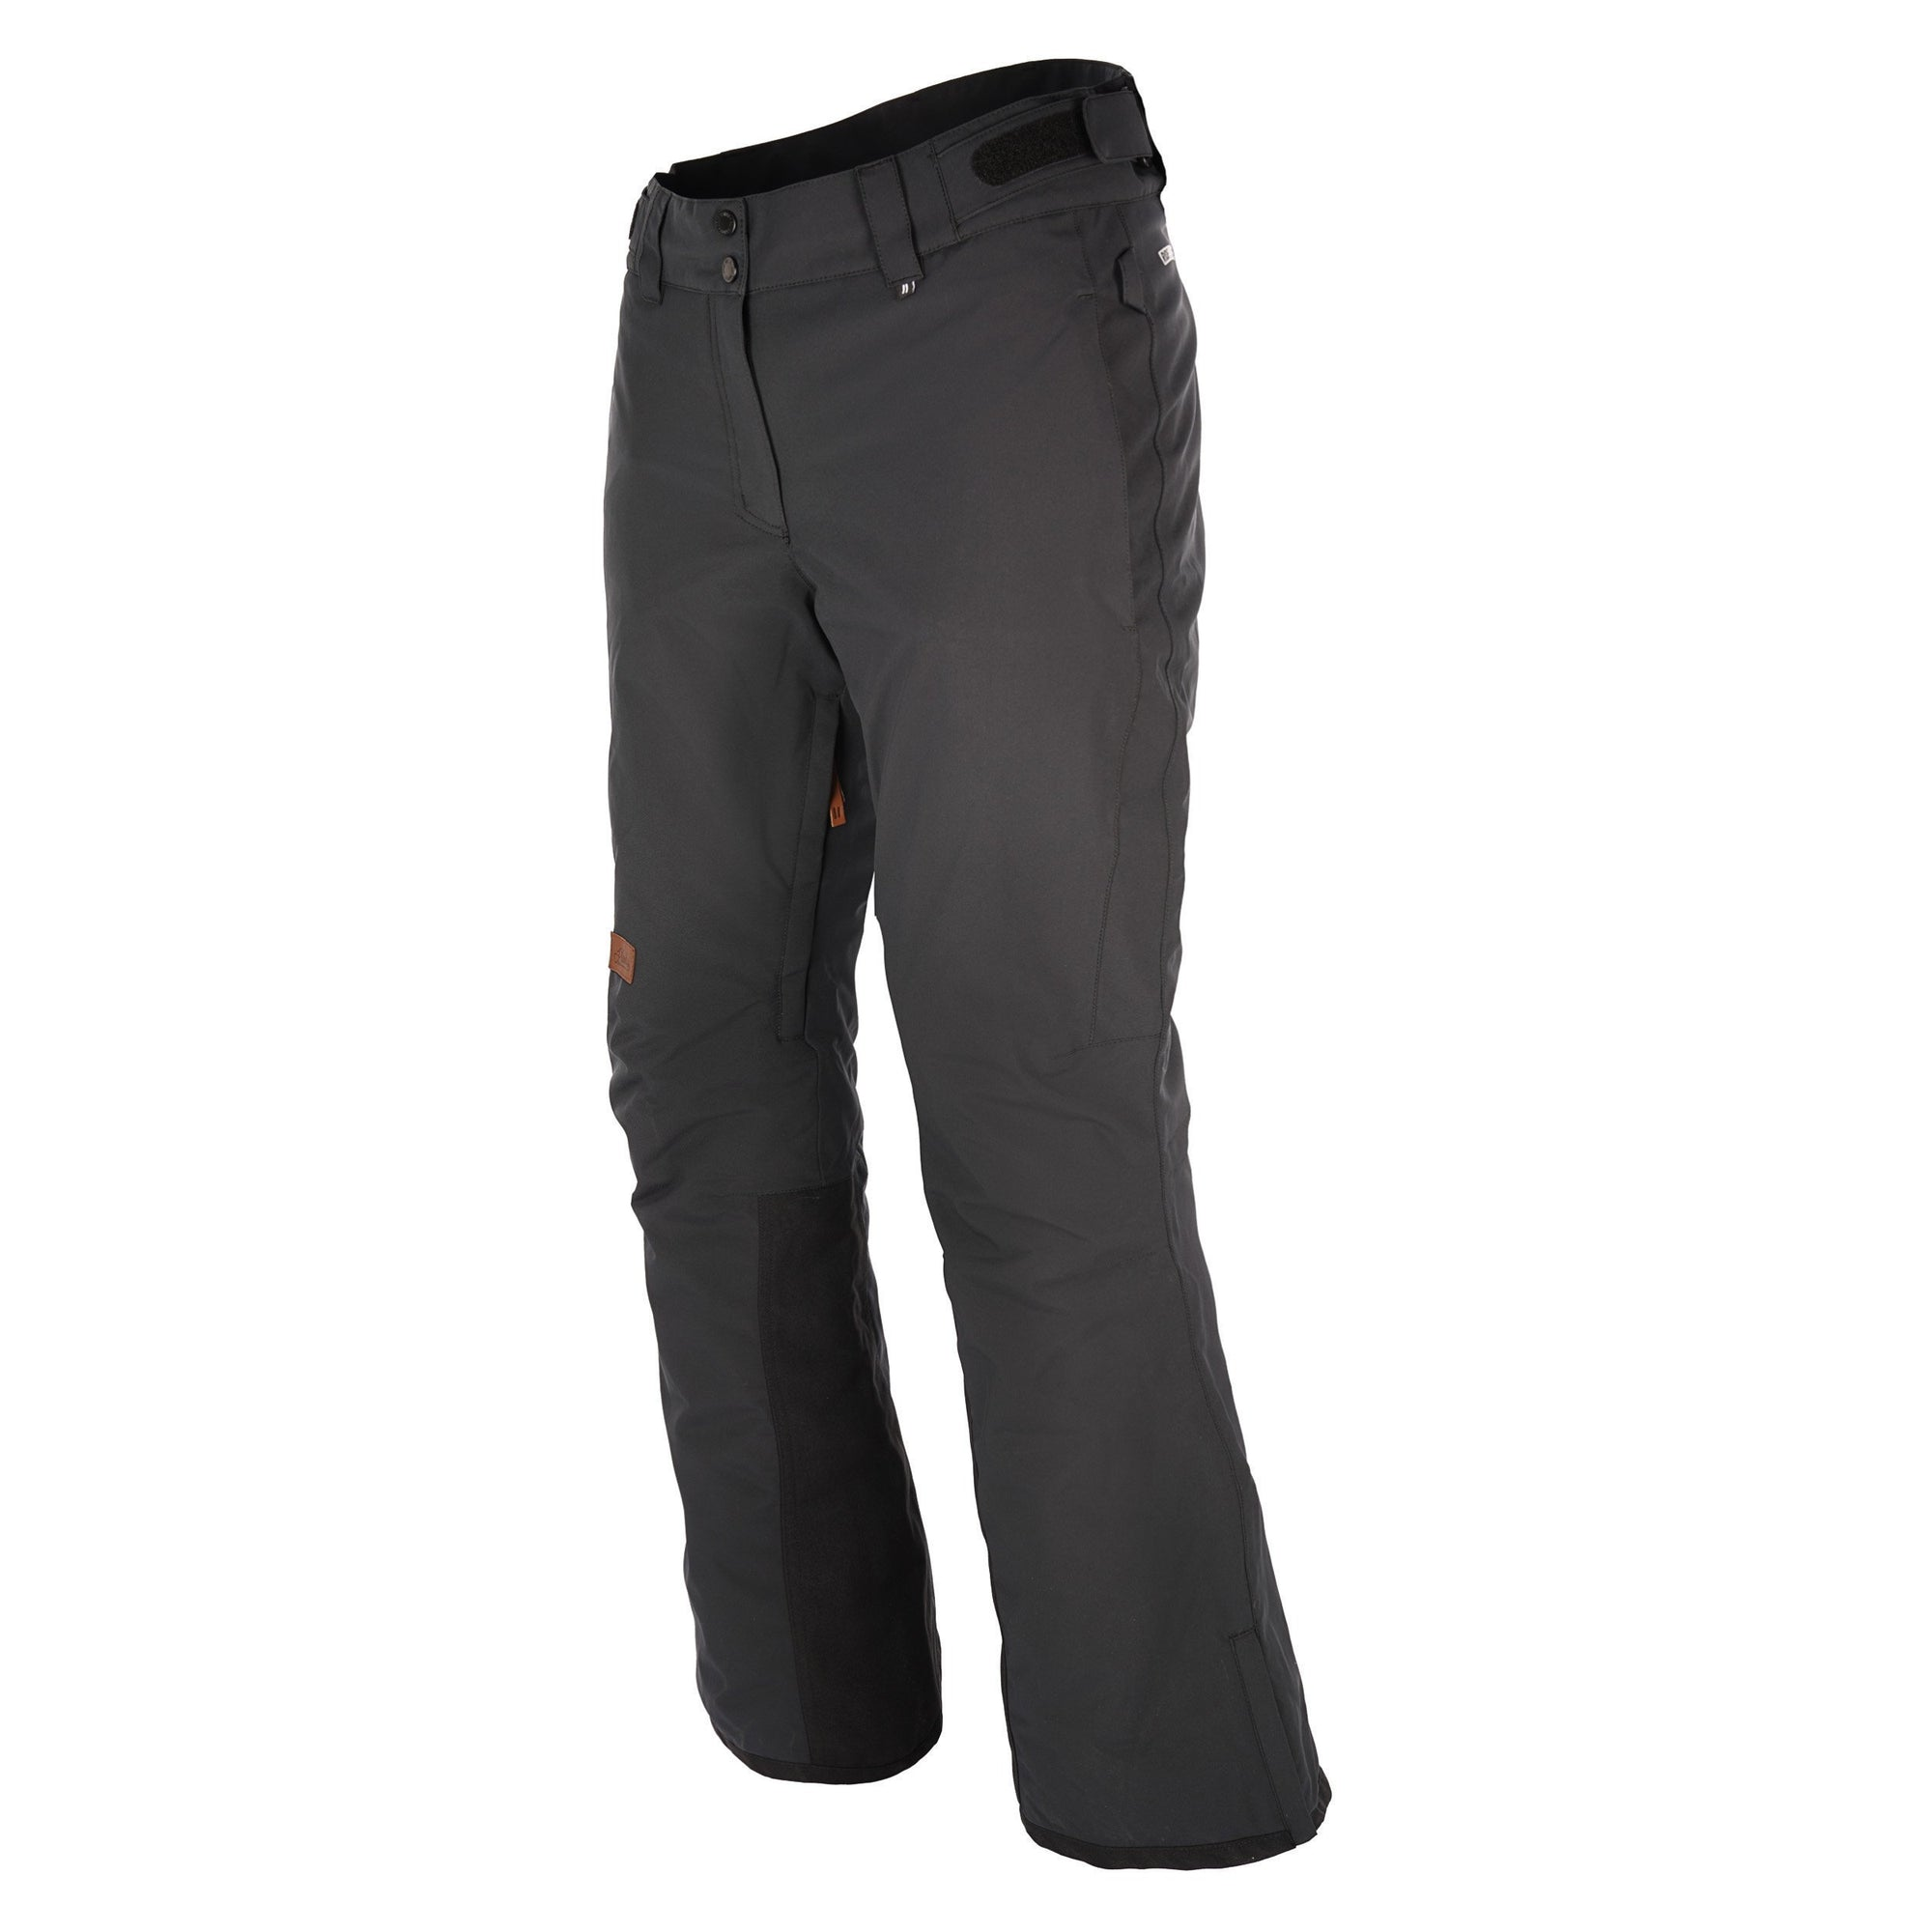 WO-ATP101A-XS, Planks, Women's All-time Insulated Pant, Black, Womens Ski Trousers